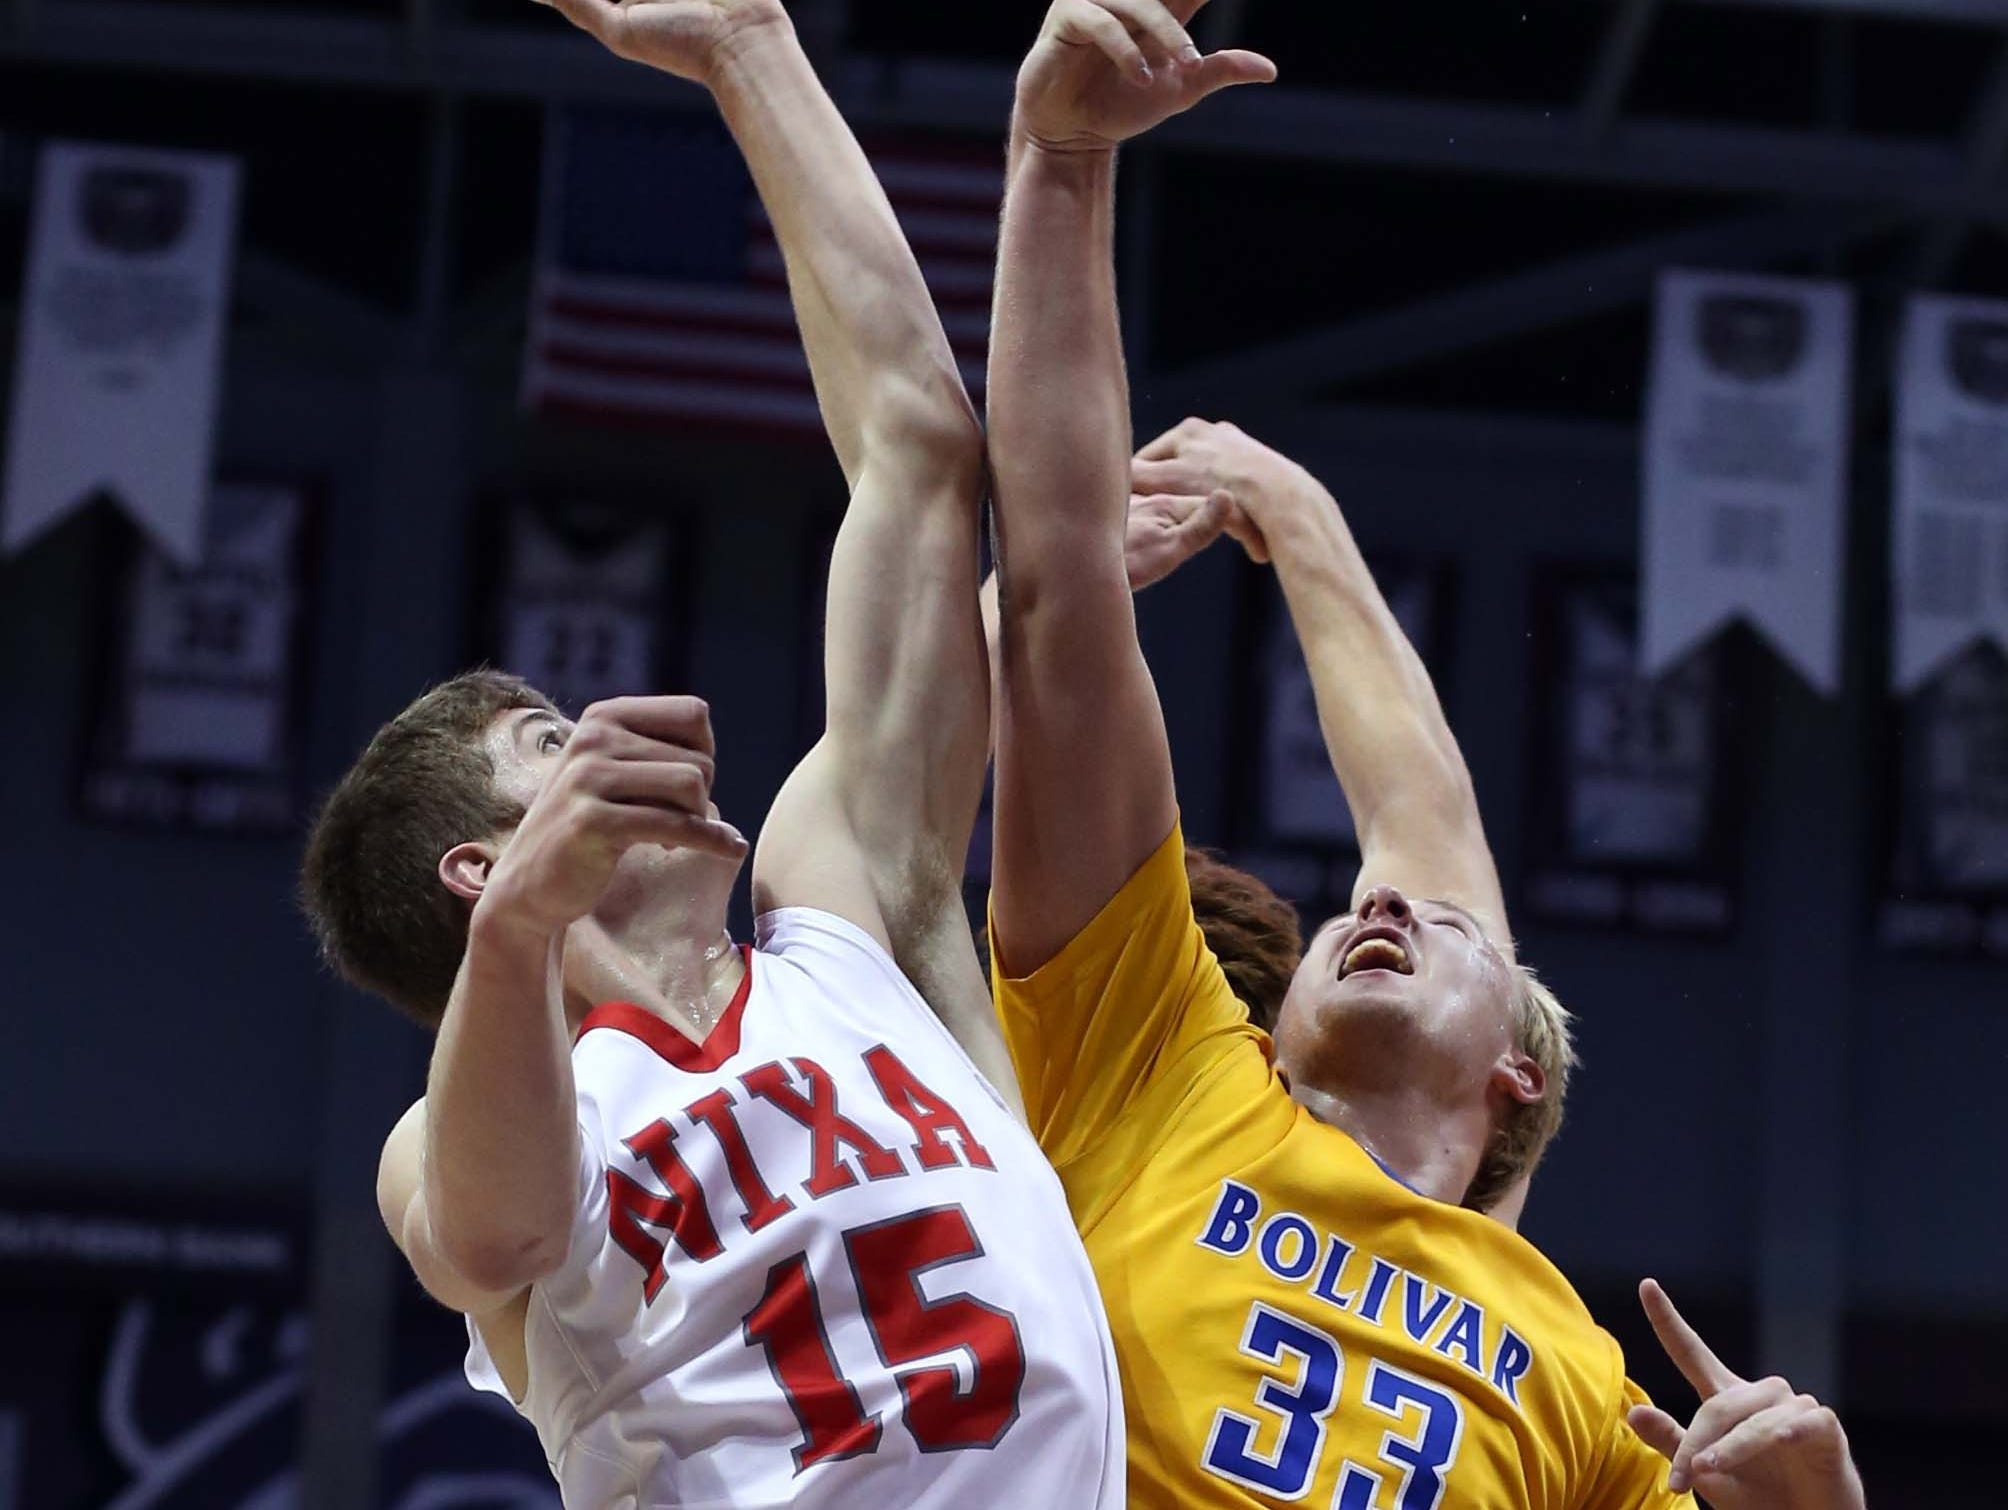 Bolivar's Brandon Emmert (right) battles for a rebound during the final round of the 70th Greenwood Blue and Gold Tournament.